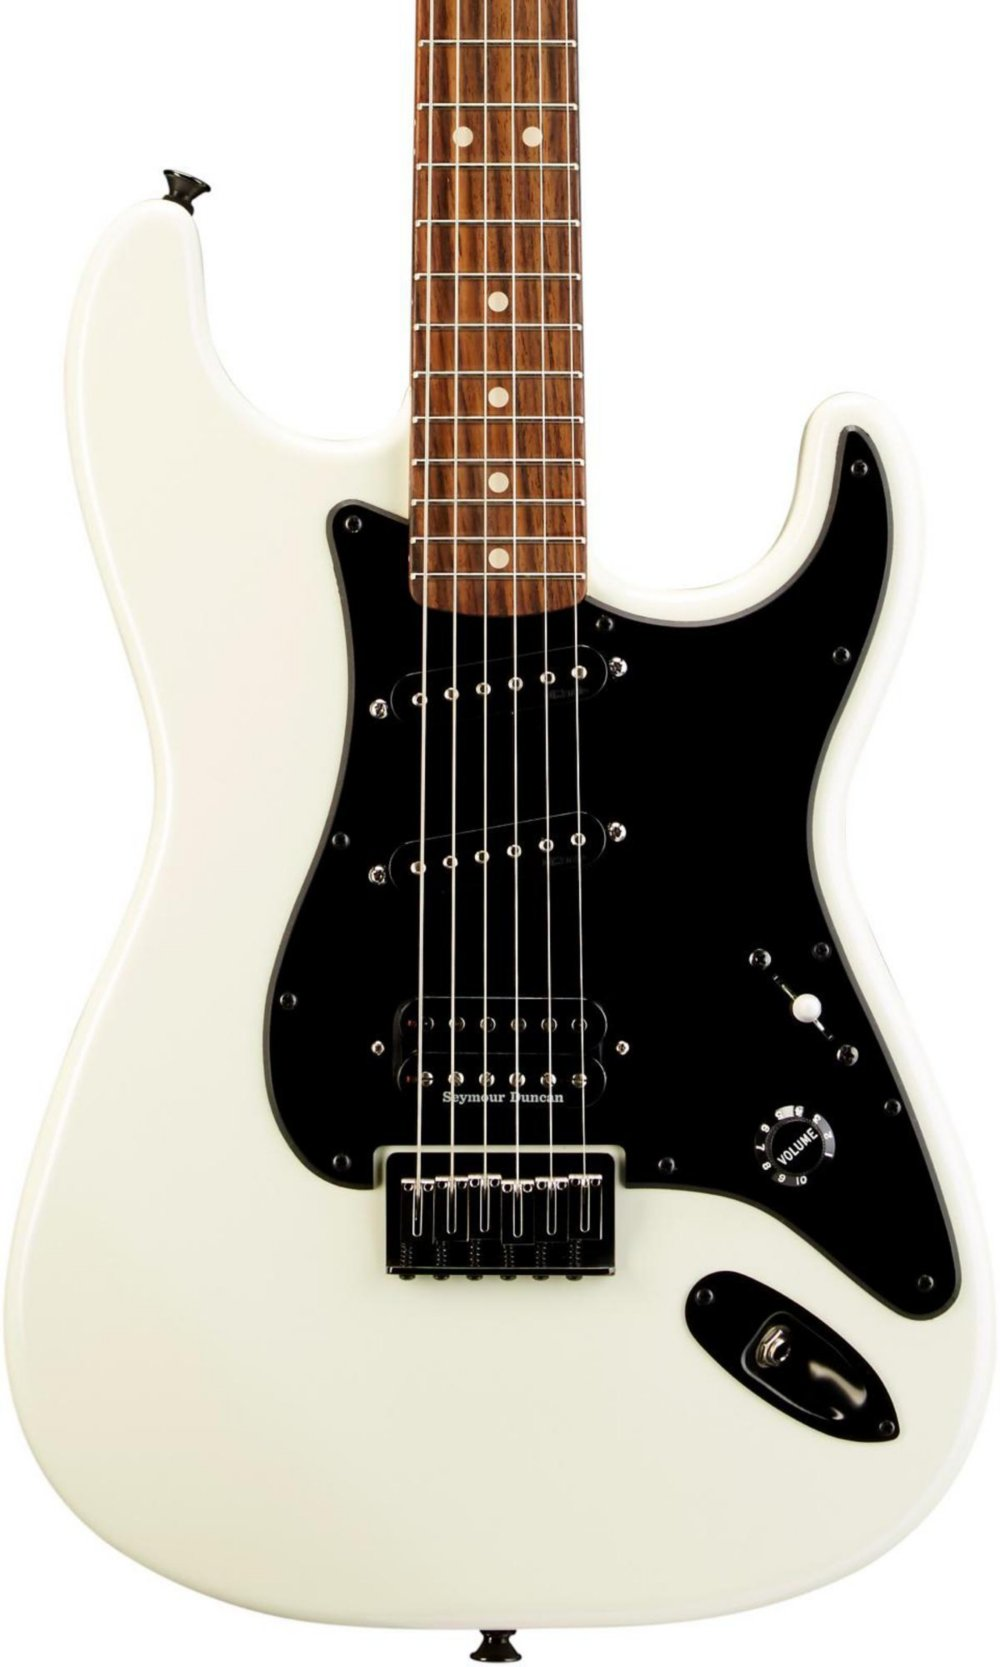 Cheap Charvel Jake E Lee Signature Model Electric Guitar Pearl White Black Friday & Cyber Monday 2019